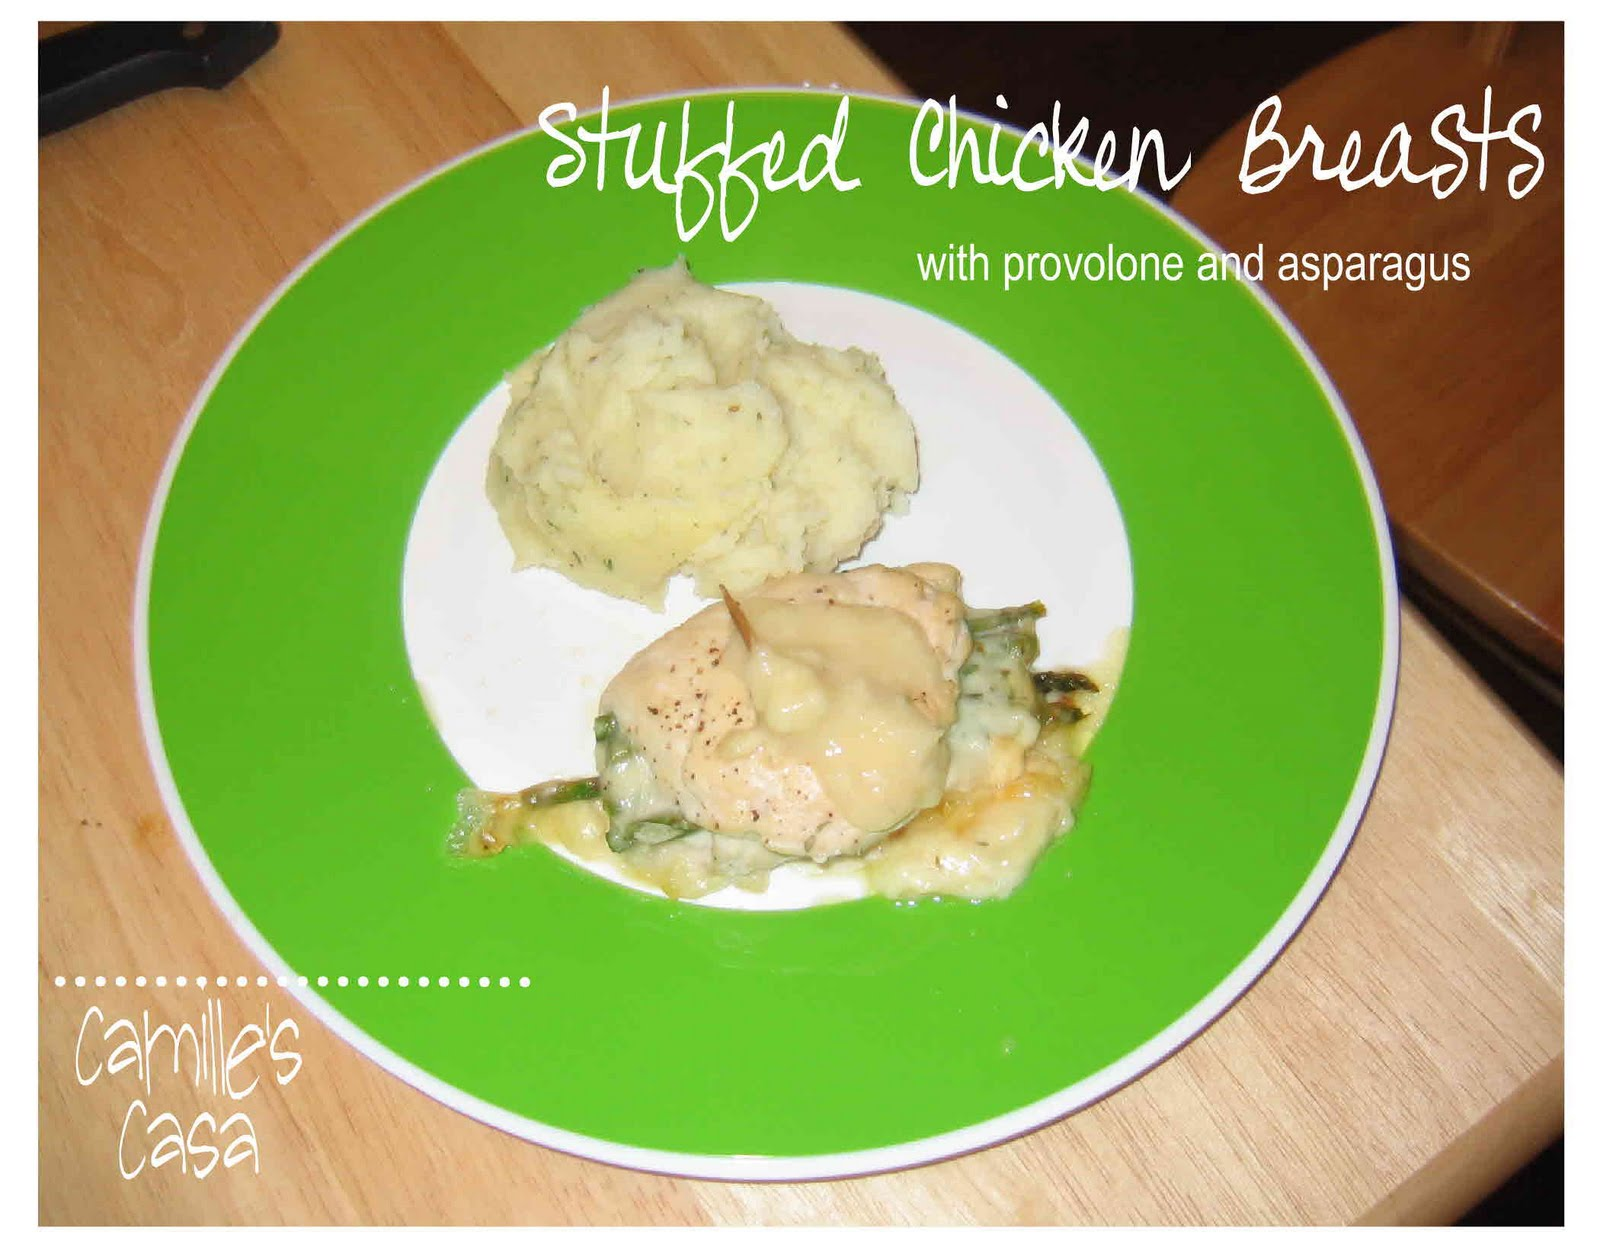 Camille's Casa: Stuffed Chicken Breasts (provolone & asparagus)